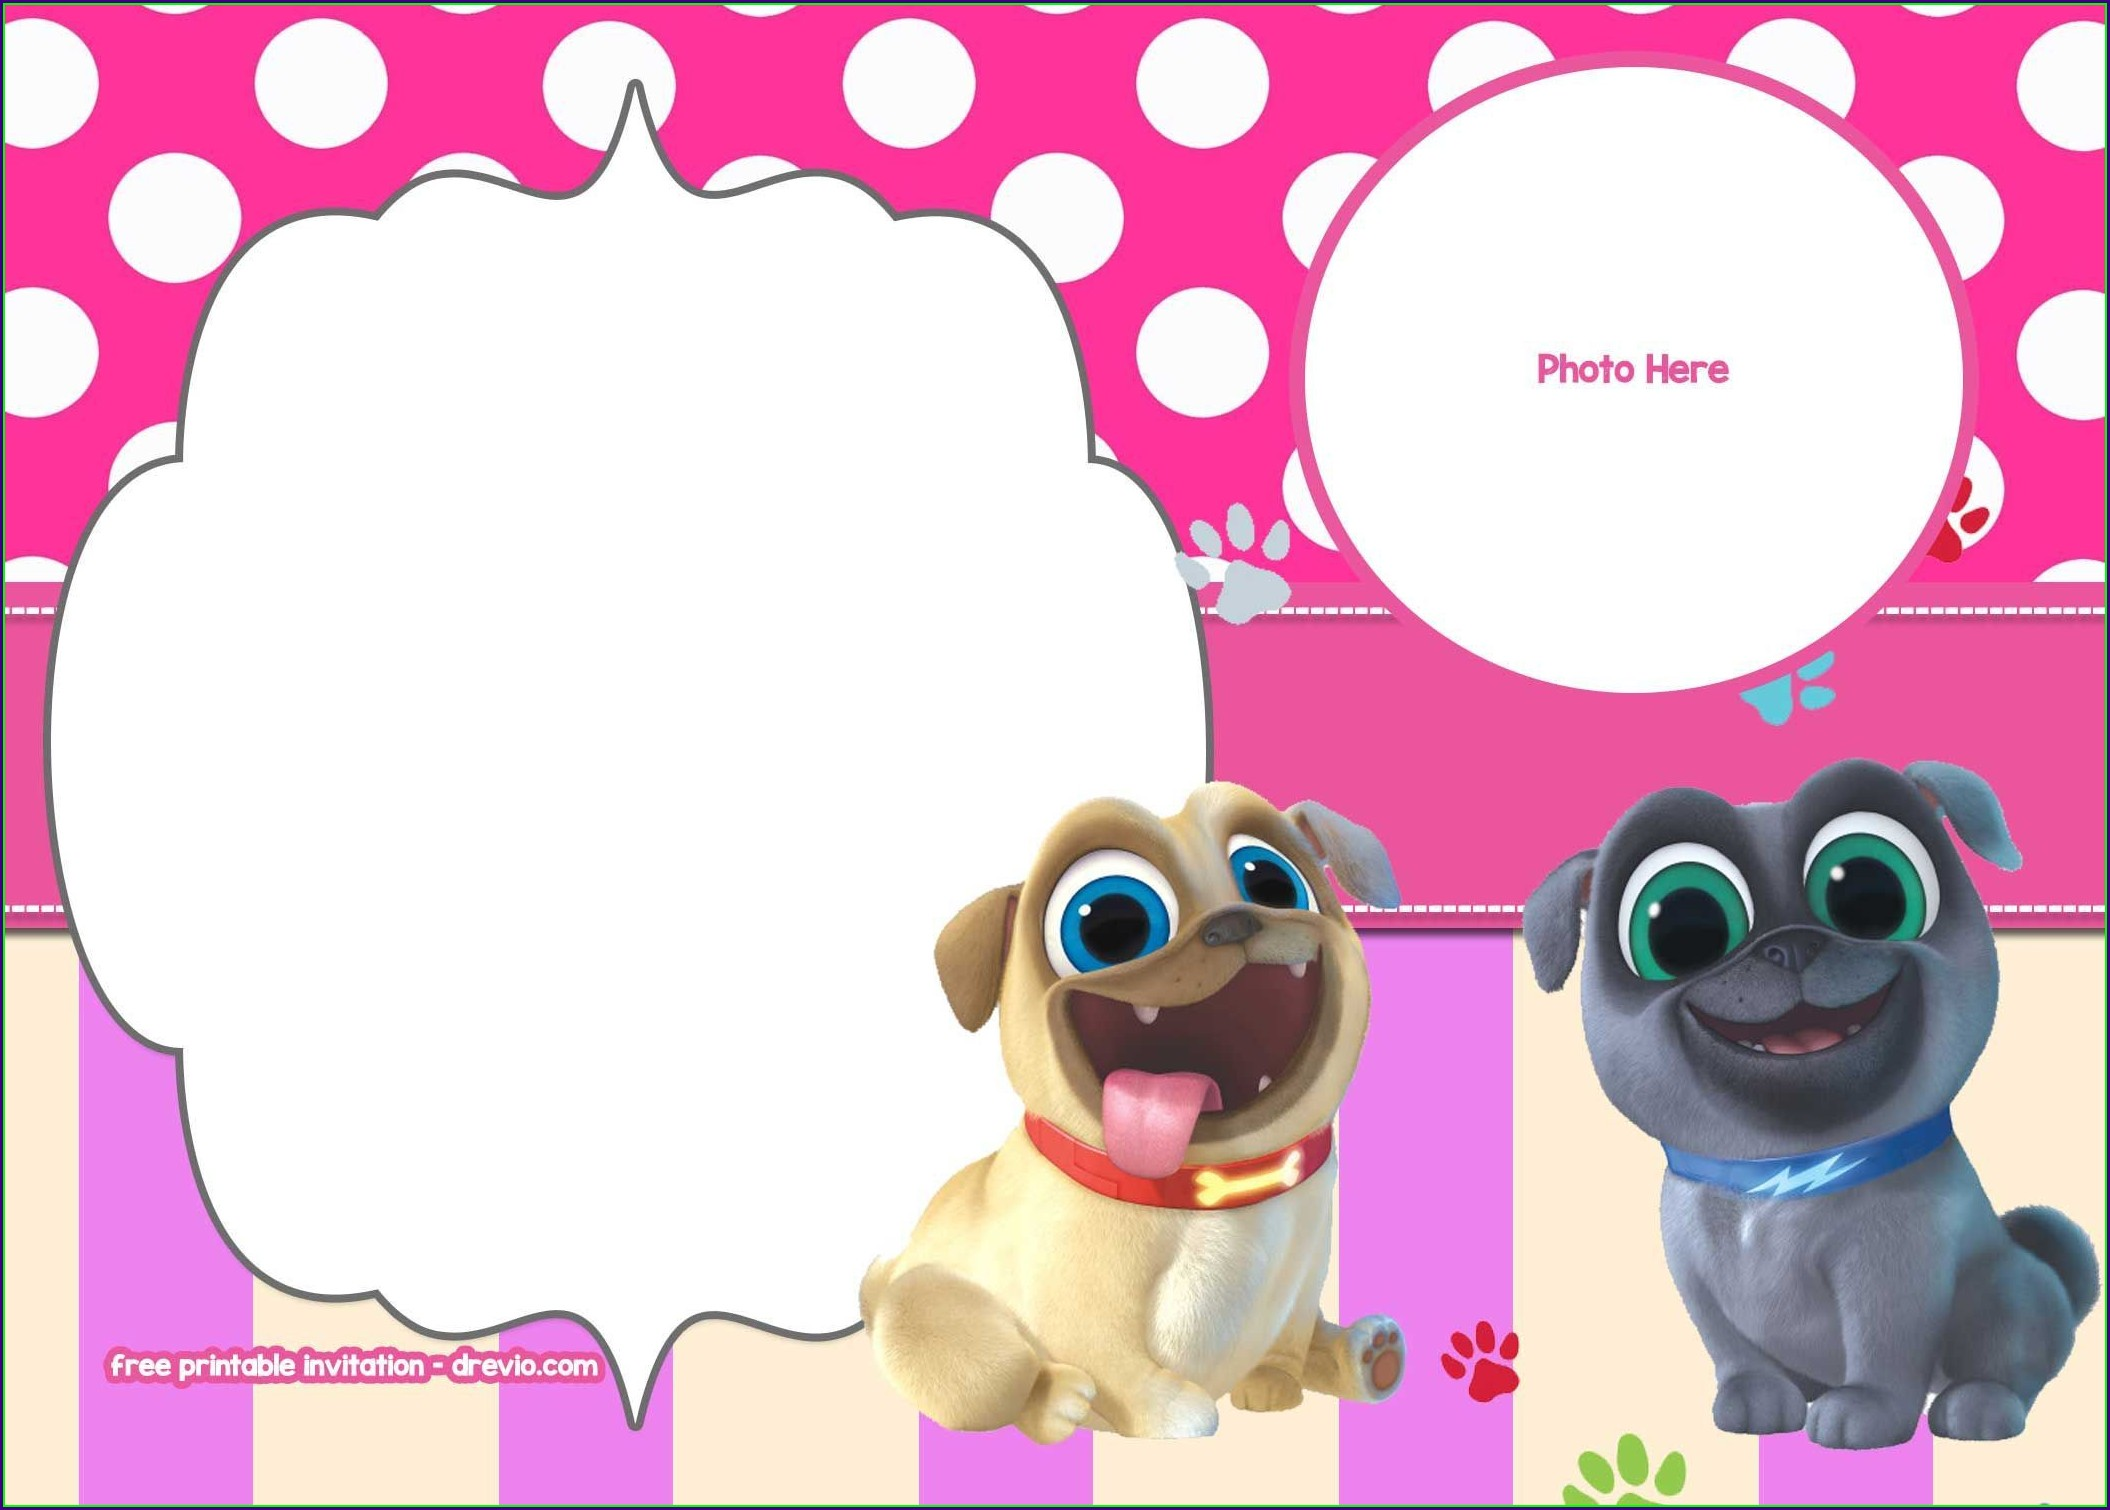 Puppy Dog Pals Invitations Blank